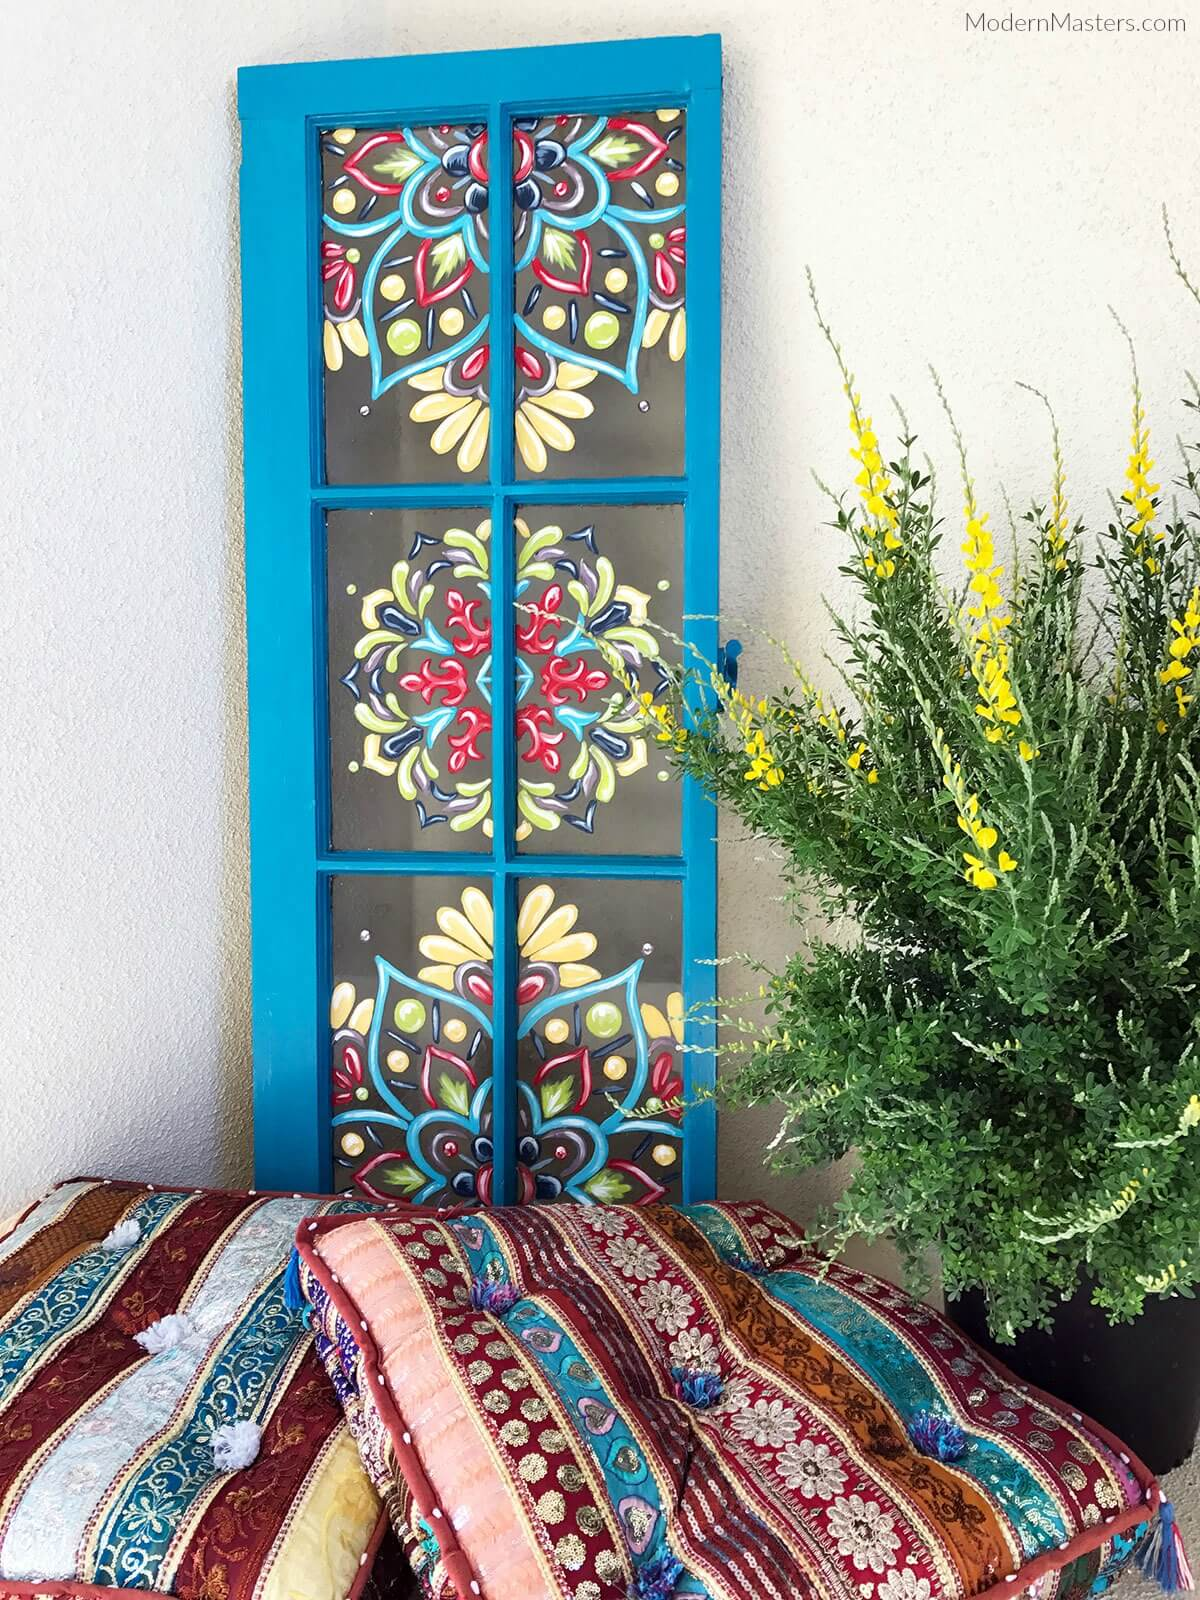 Tole Painting on Bright Blue Window Frame | DIY Painted Garden Decoration Ideas